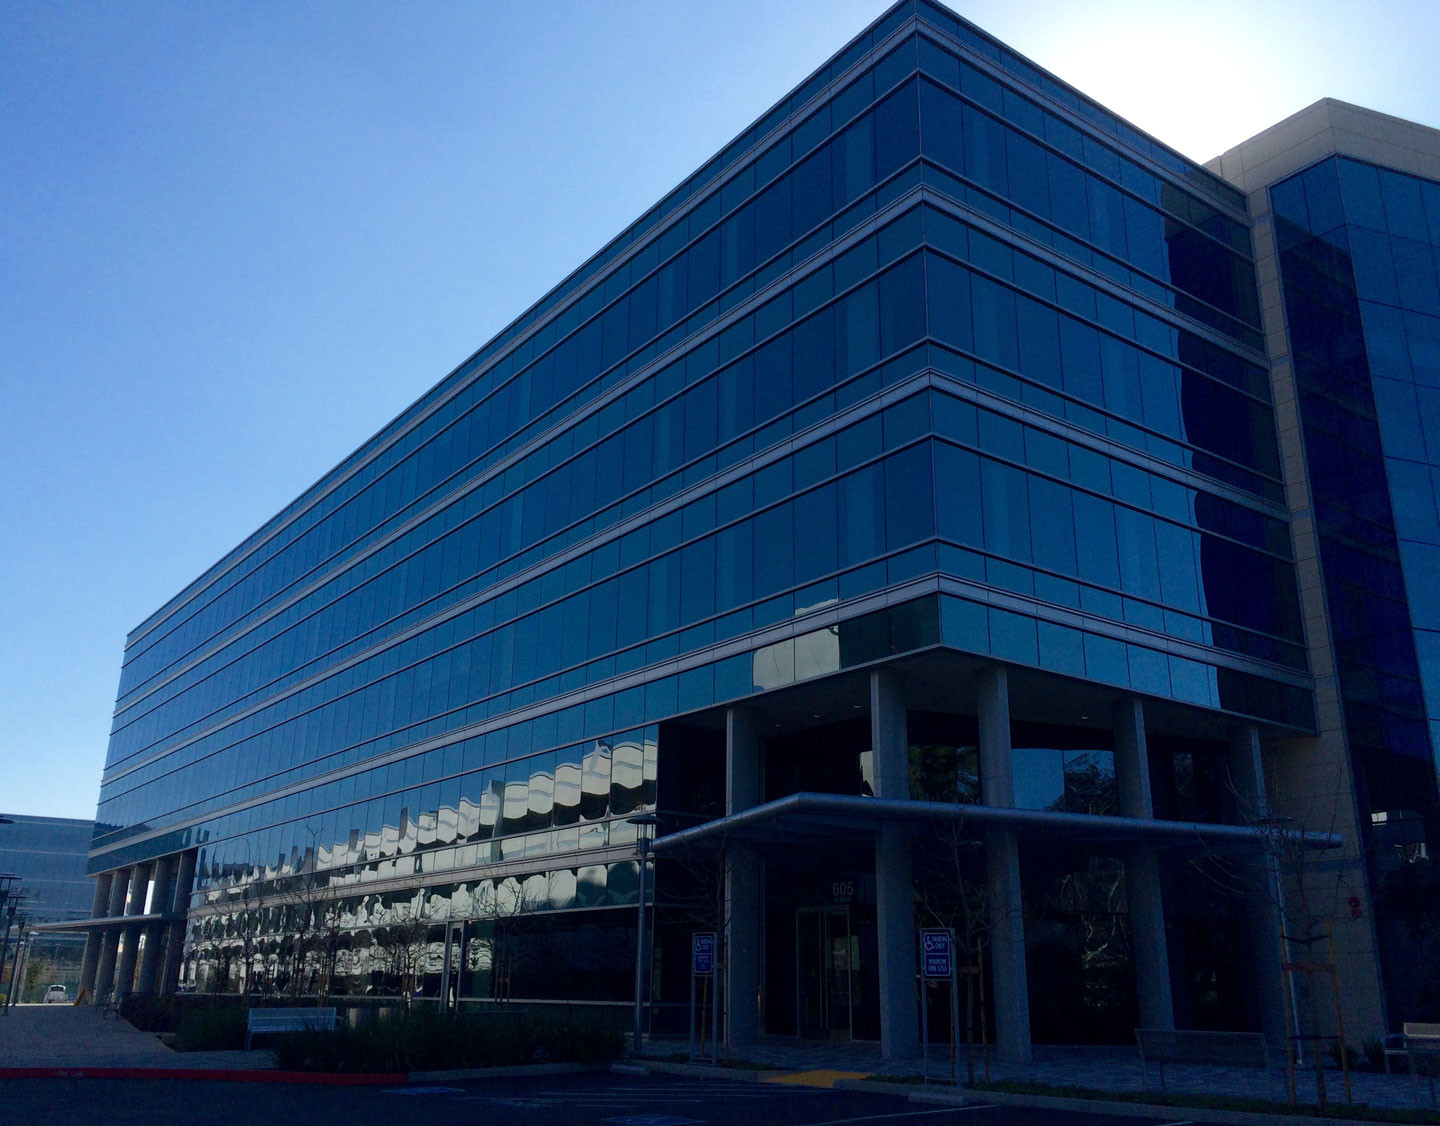 The new LinkedIn office in Sunnyvale was built by global developer Kilroy Realty based in Los Angeles.   Beth Willon/KQED